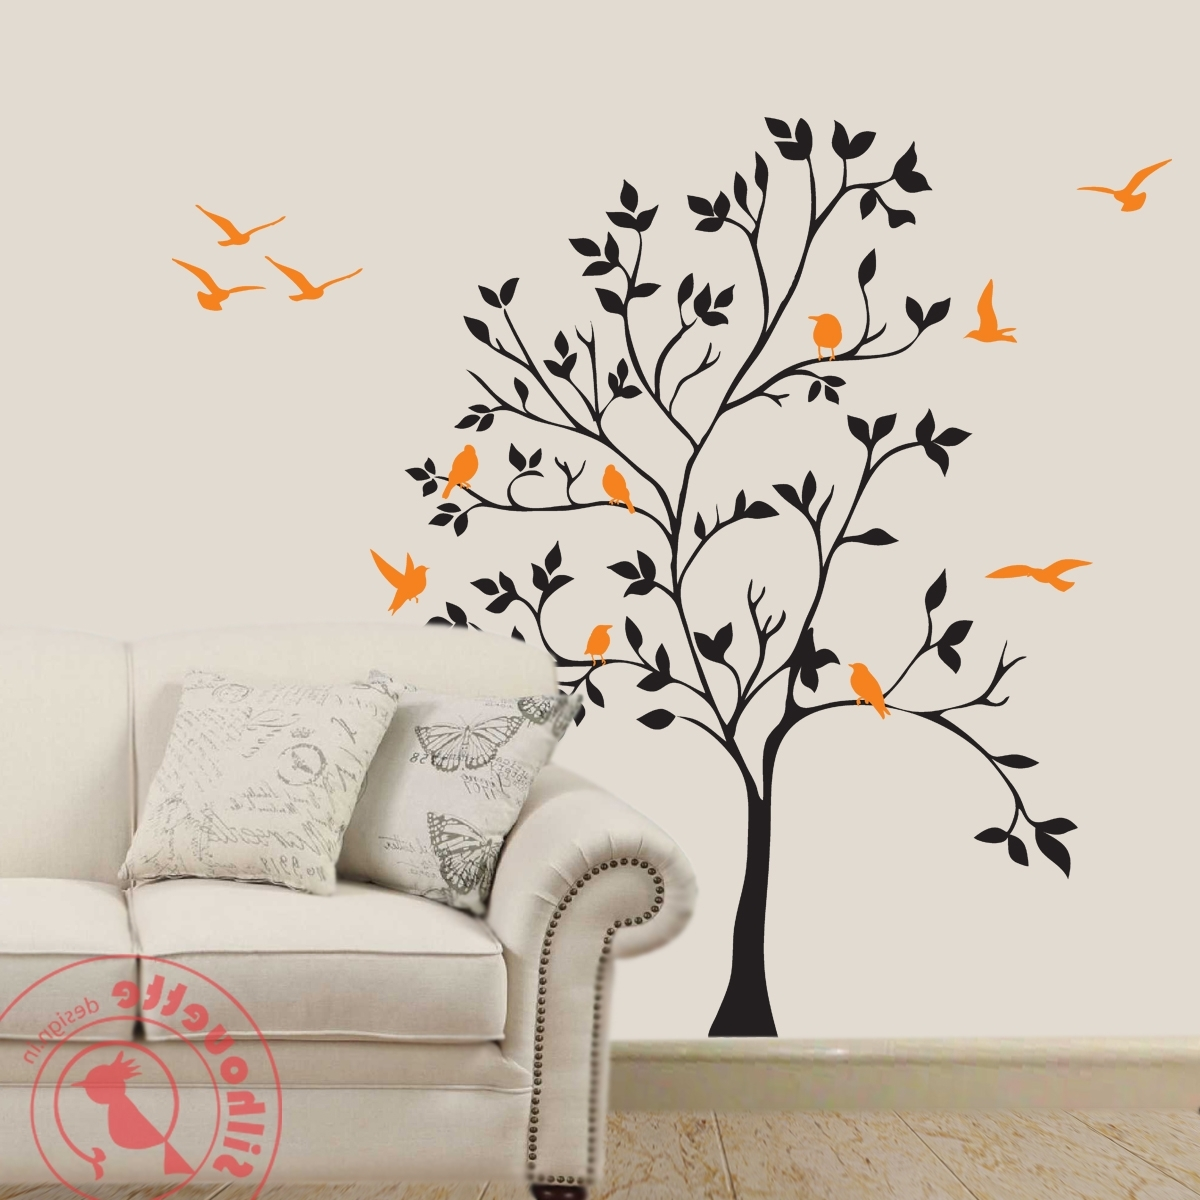 Tree Of Life Wall Art Stickers Regarding Most Popular Tree Design Wall Art • Wall Design (View 10 of 15)